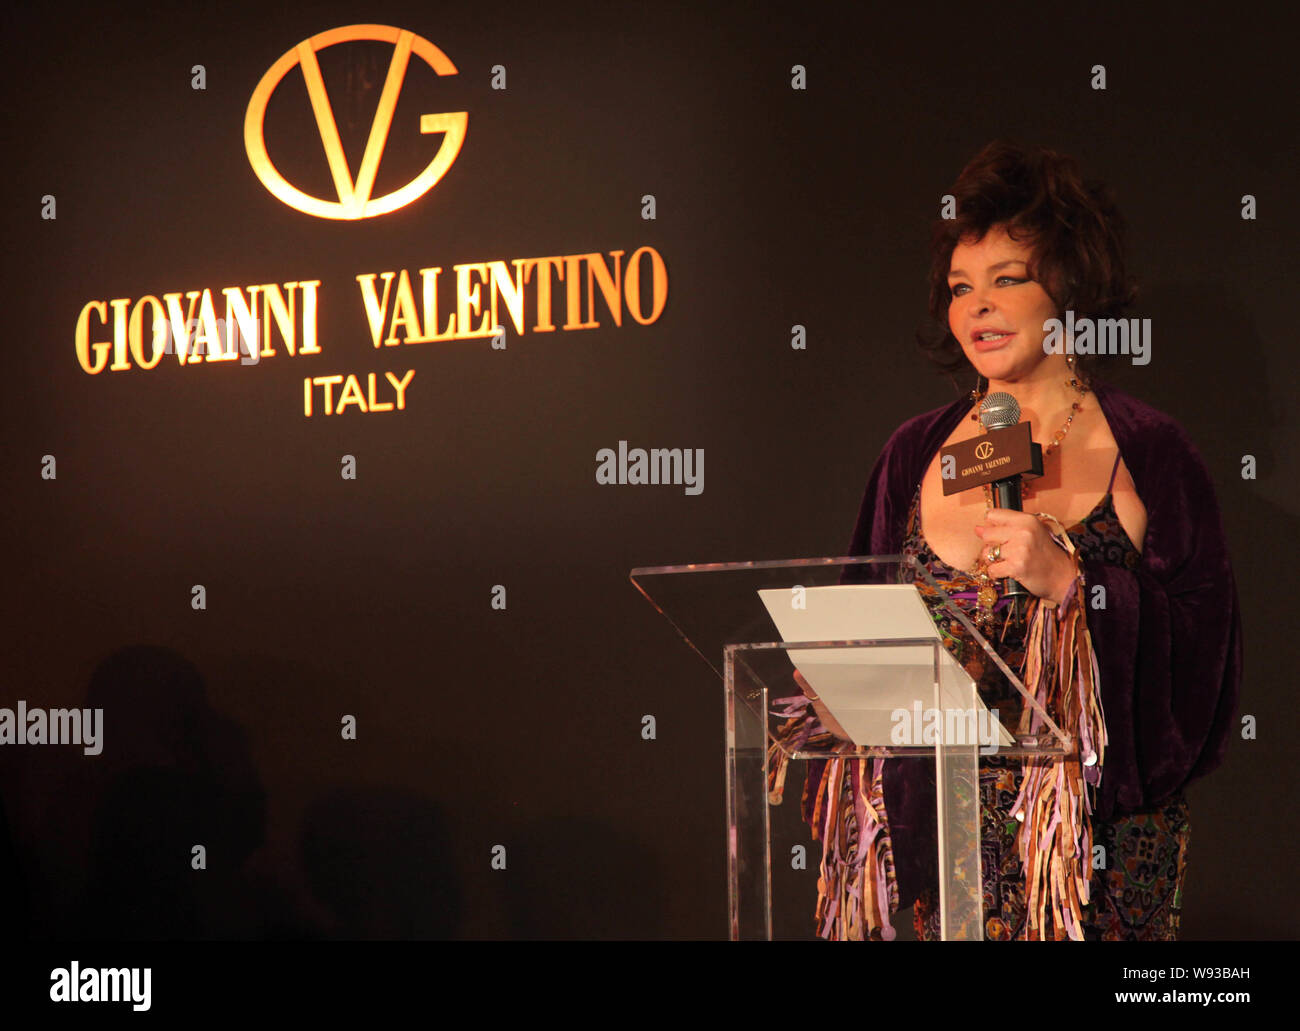 Annabella Valentino The Wife Of Italian Fashion Designer Giovanni Valentino Speaks At A Fashion Show Of Giovanni Valentino In Shanghai China 3 Dec Stock Photo Alamy